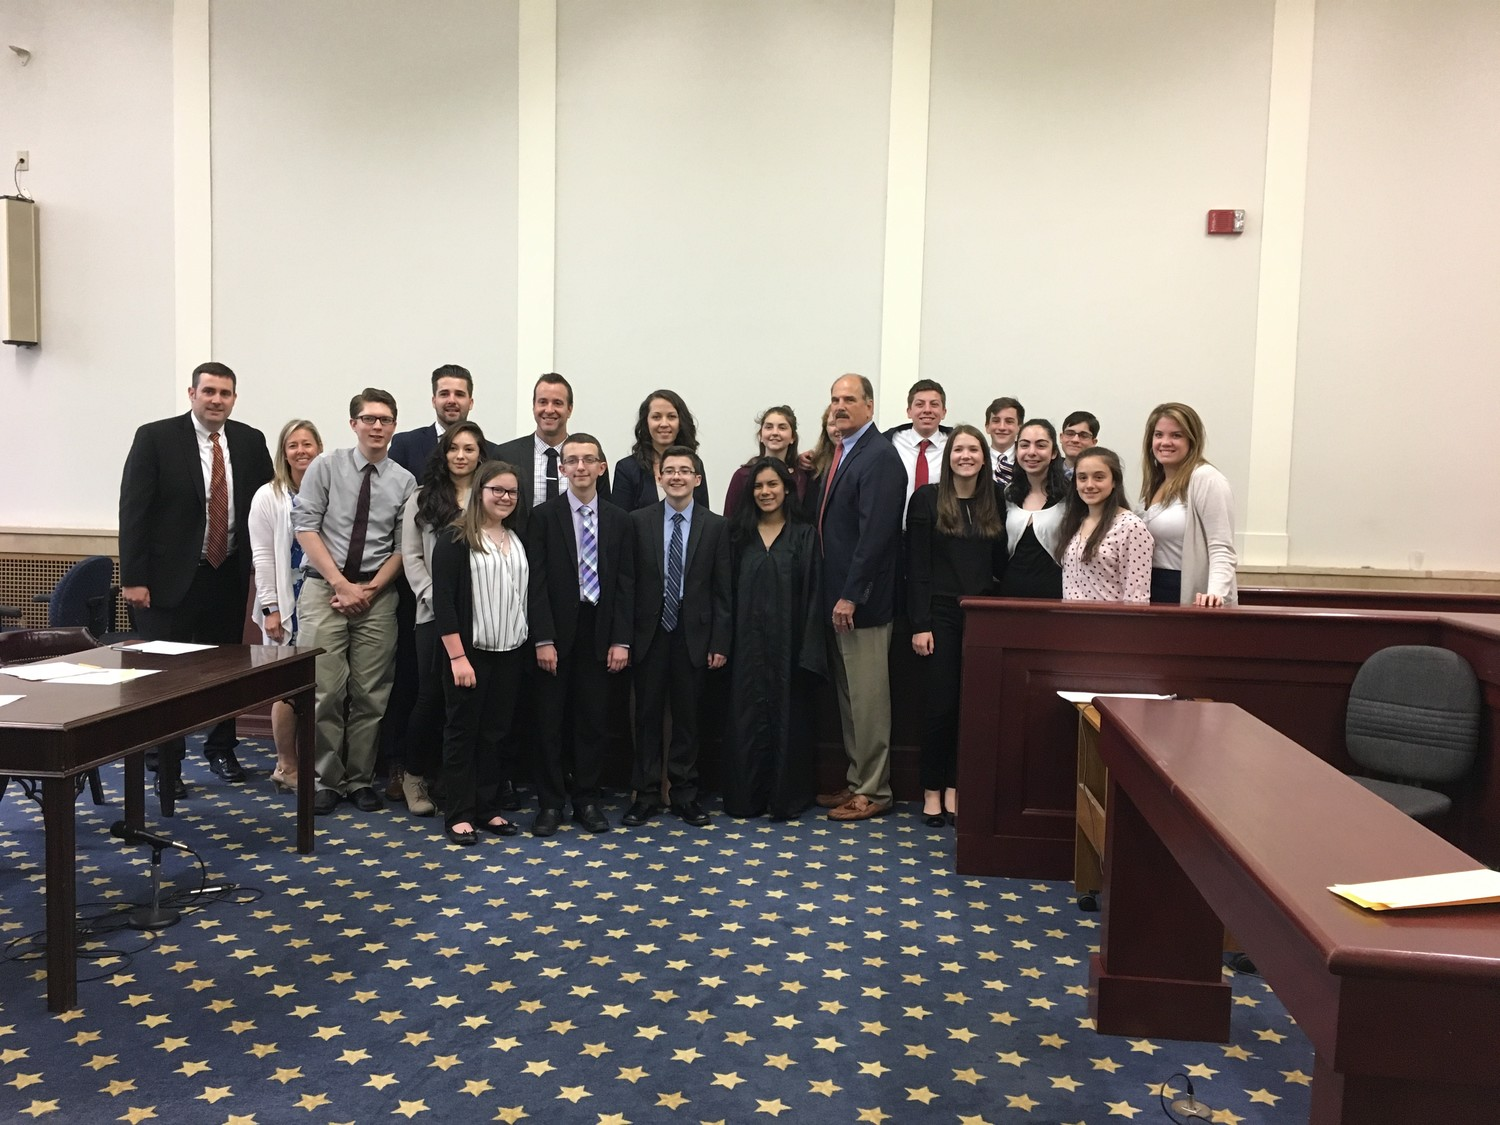 Participants in the Glen Cove Youth Court program, along with their adult advisors, gathered for a pre-trial photo in the Glen Cove City Courthouse, where young jurors found that it was the defendant's mother, and not the defendant, who let the dogs out.